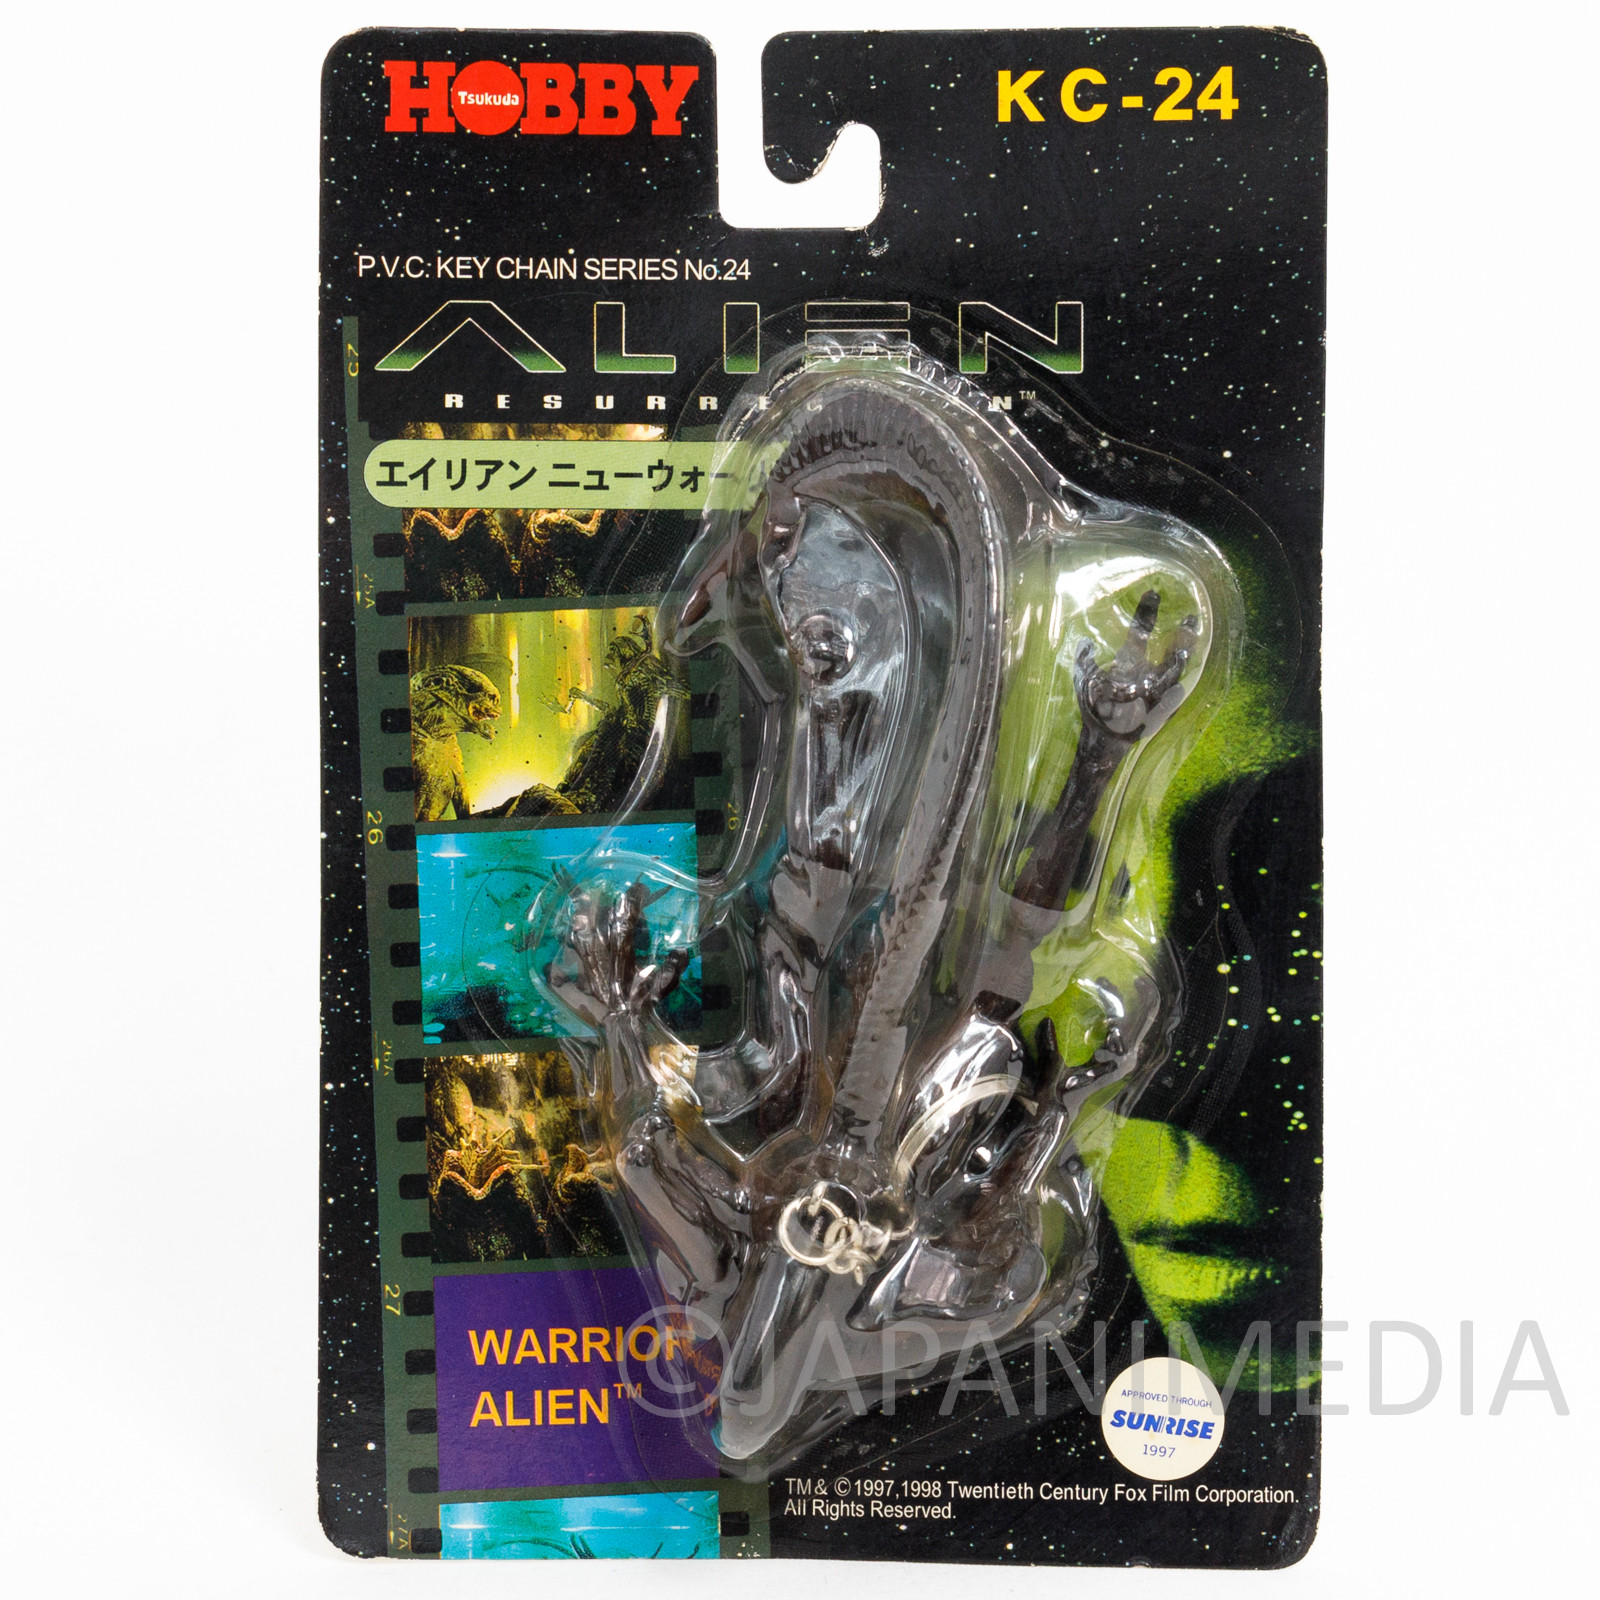 ALIEN Resurrestion New Warrior Figure Key Chain Tsukuda Hobby KC-24